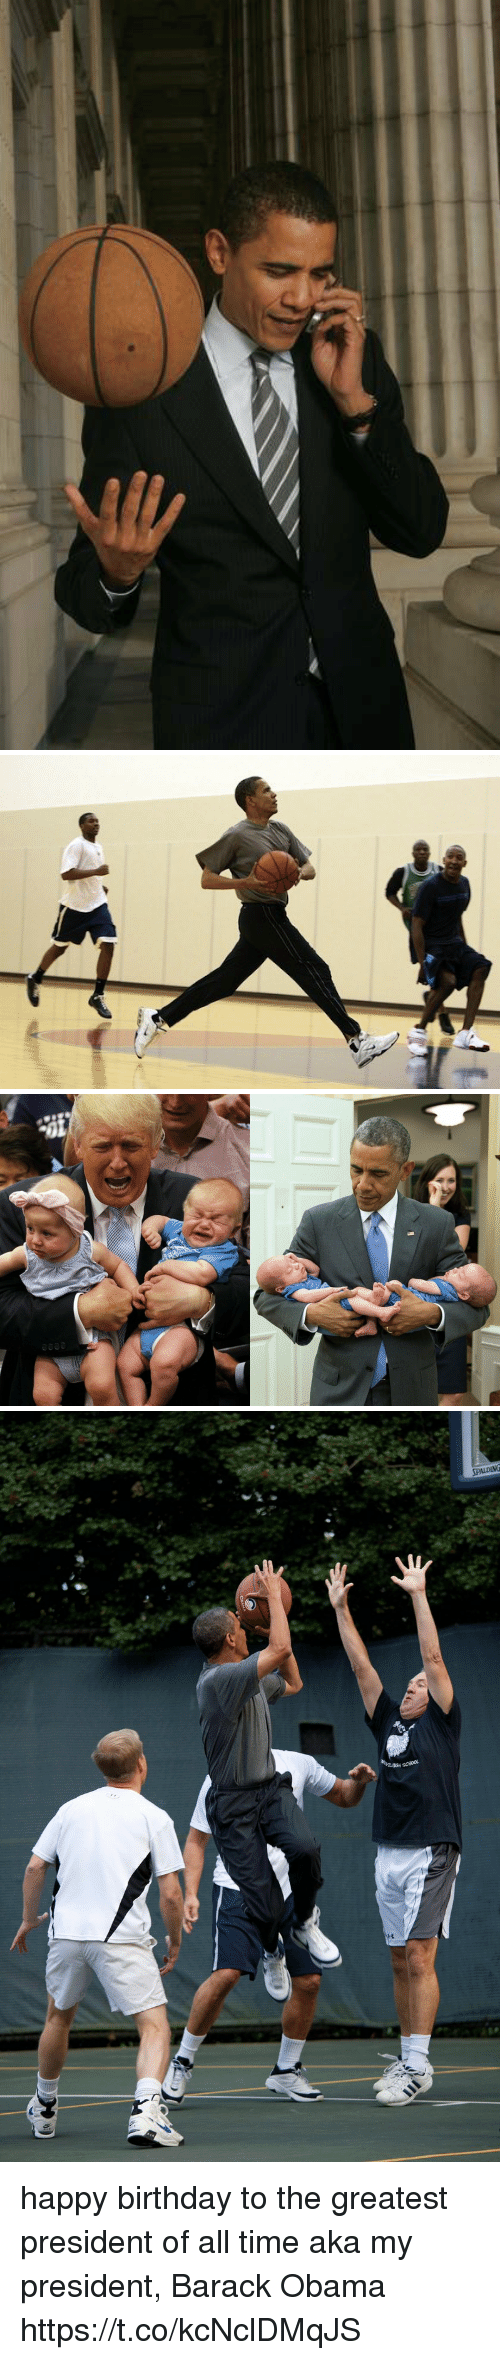 Birthday, Funny, and Obama: happy birthday to the greatest president of all time aka my president, Barack Obama https://t.co/kcNclDMqJS